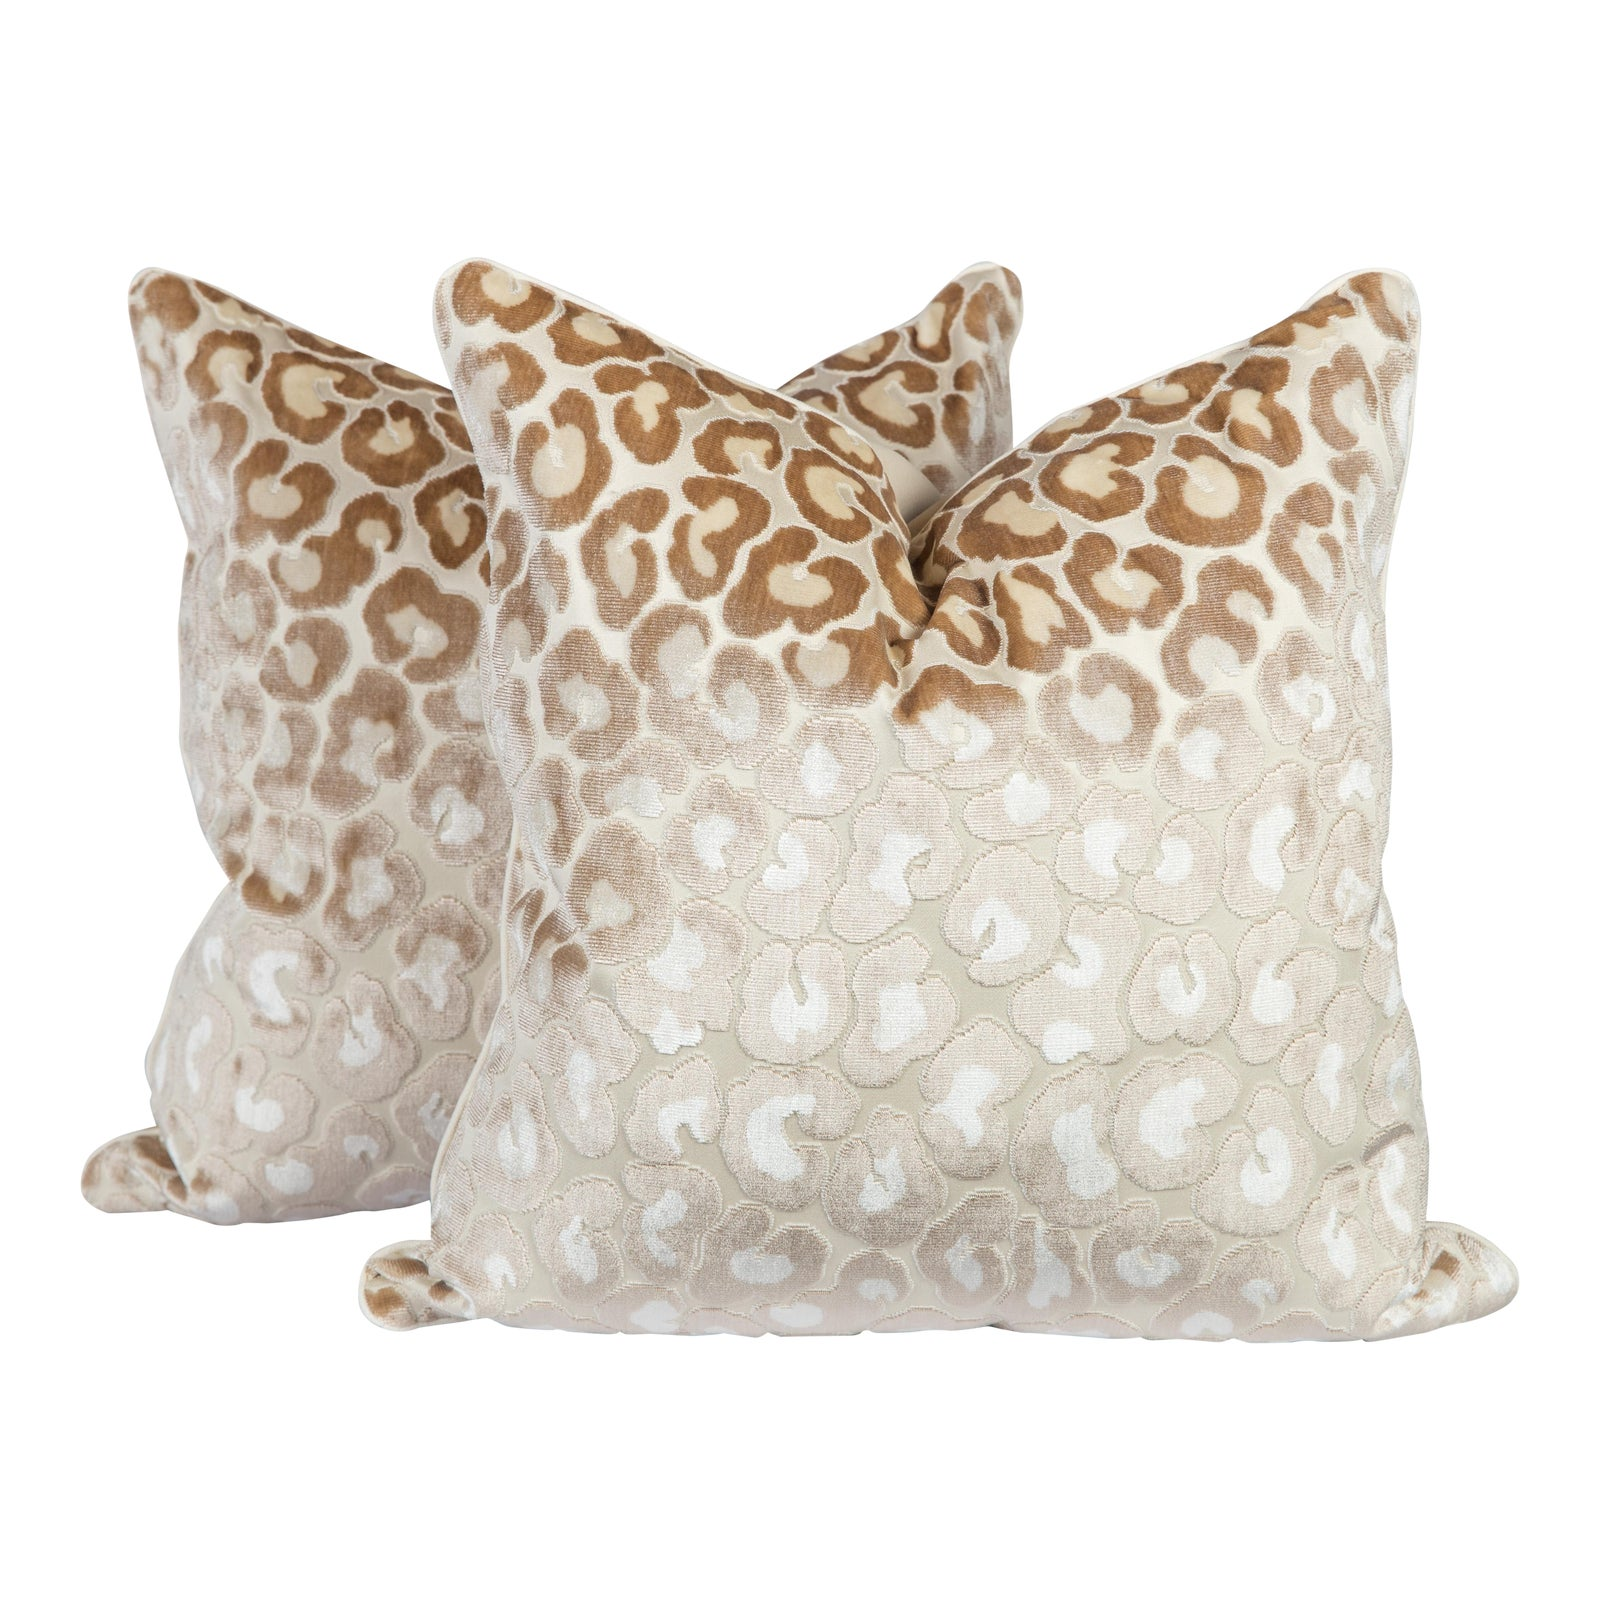 whi kevin velvet sg white dec leopard pillow pillows obrien discontinued studio tn leop